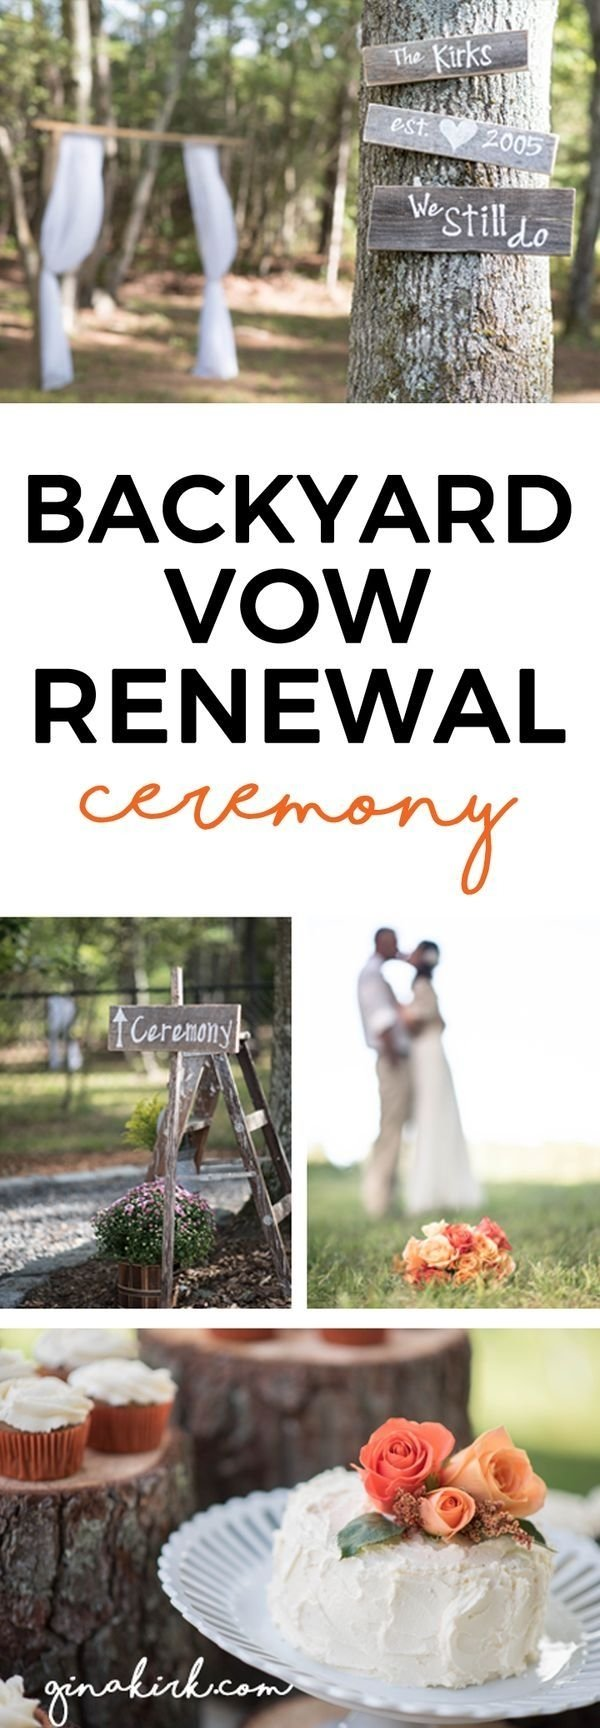 10 Most Popular 10 Year Vow Renewal Ideas celebrating 10 years our backyard vow renewal vintage diy 4 2020